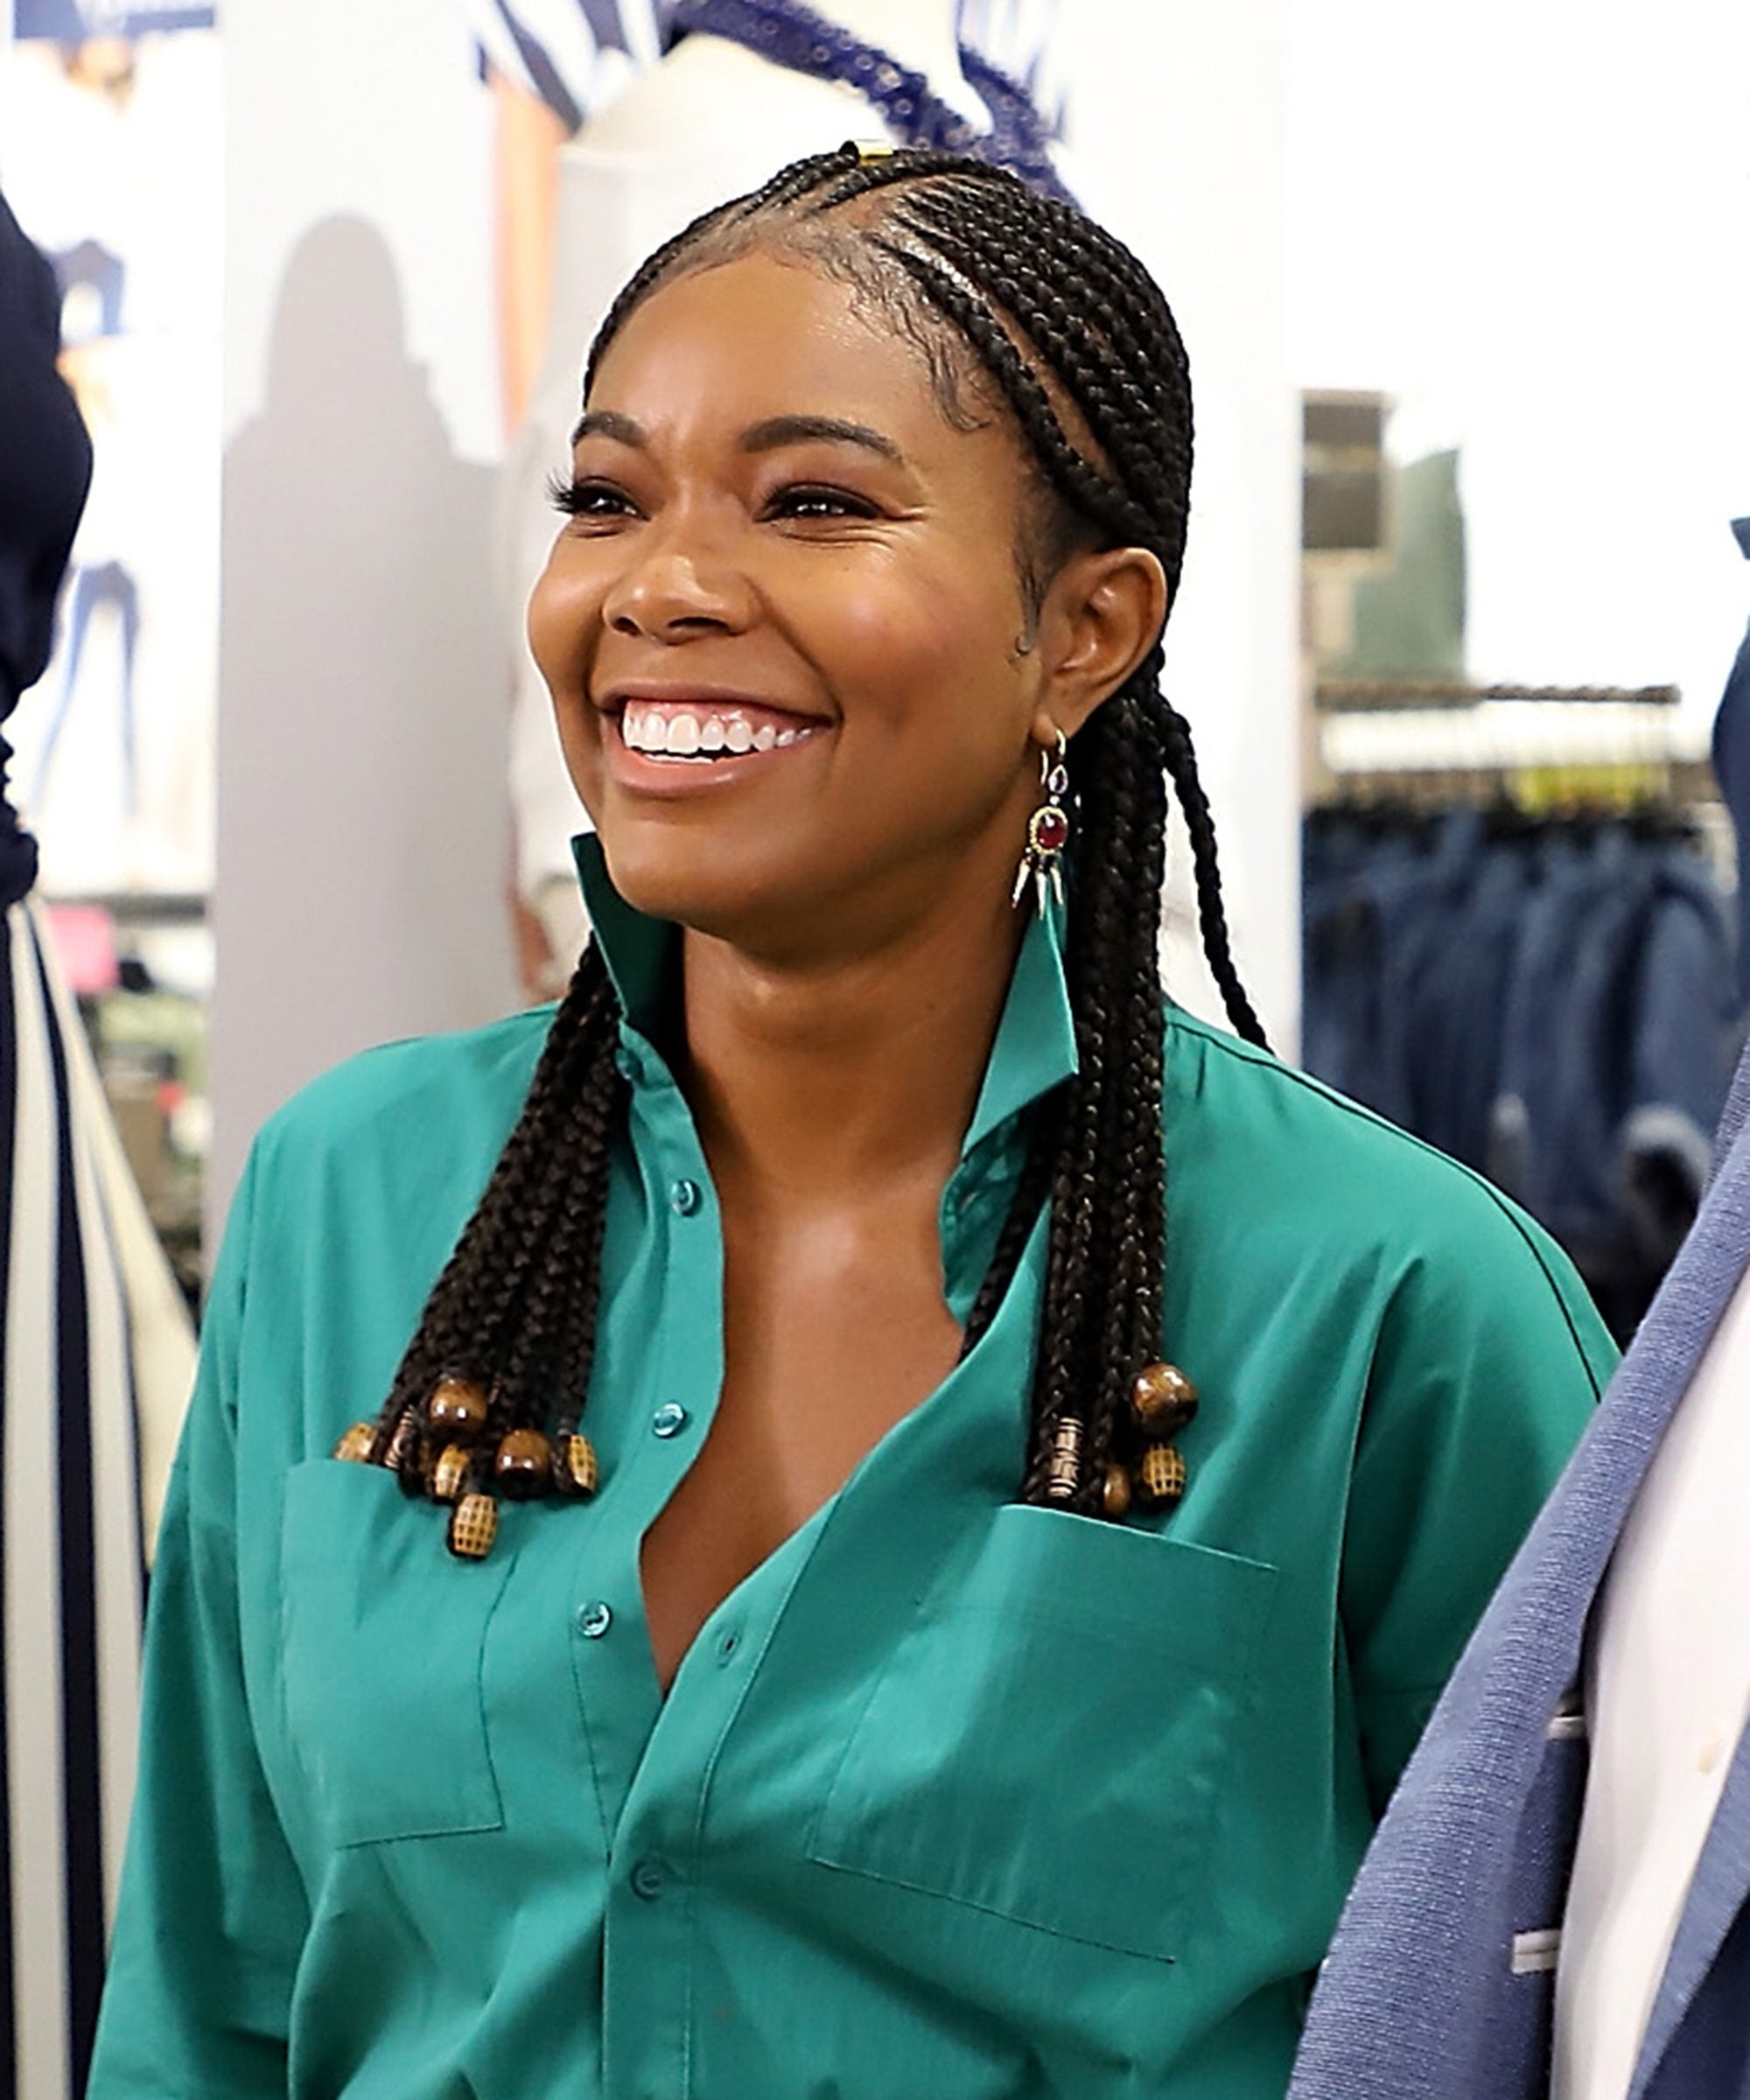 Current Metallic Side Cornrows Hairstyles With Cute Ways To Wear Beads On Cornrows, Braids, And Locs (View 6 of 20)